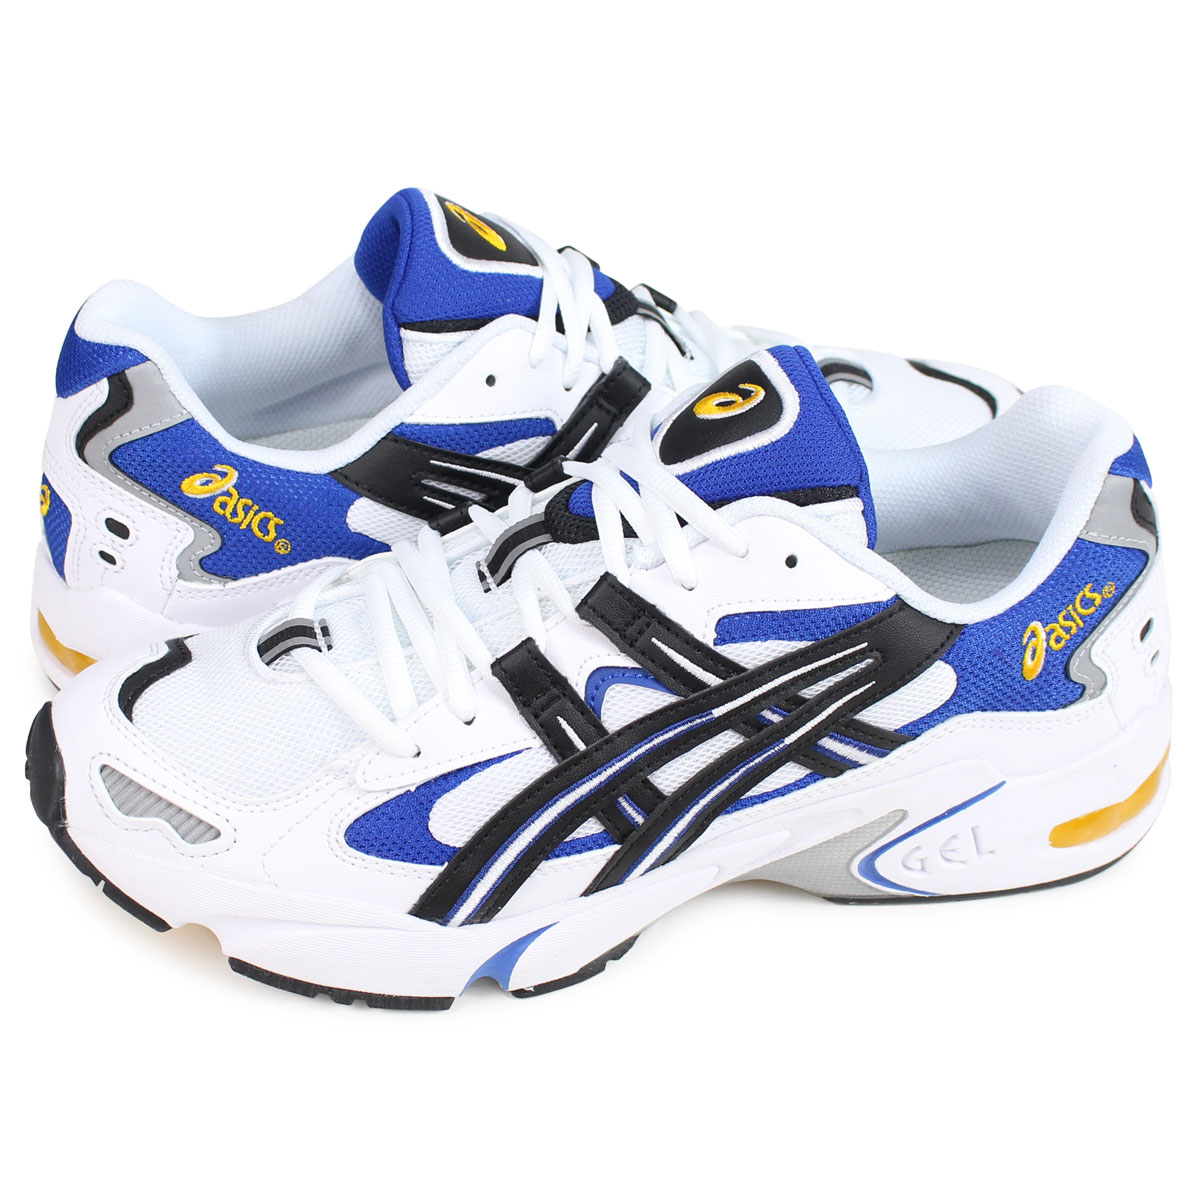 a1faefa0dc2a82 asics Tiger GEL-KAYANO 5 OG ASICS tiger gel Kayano 5 sneakers men white  1191A099 ...